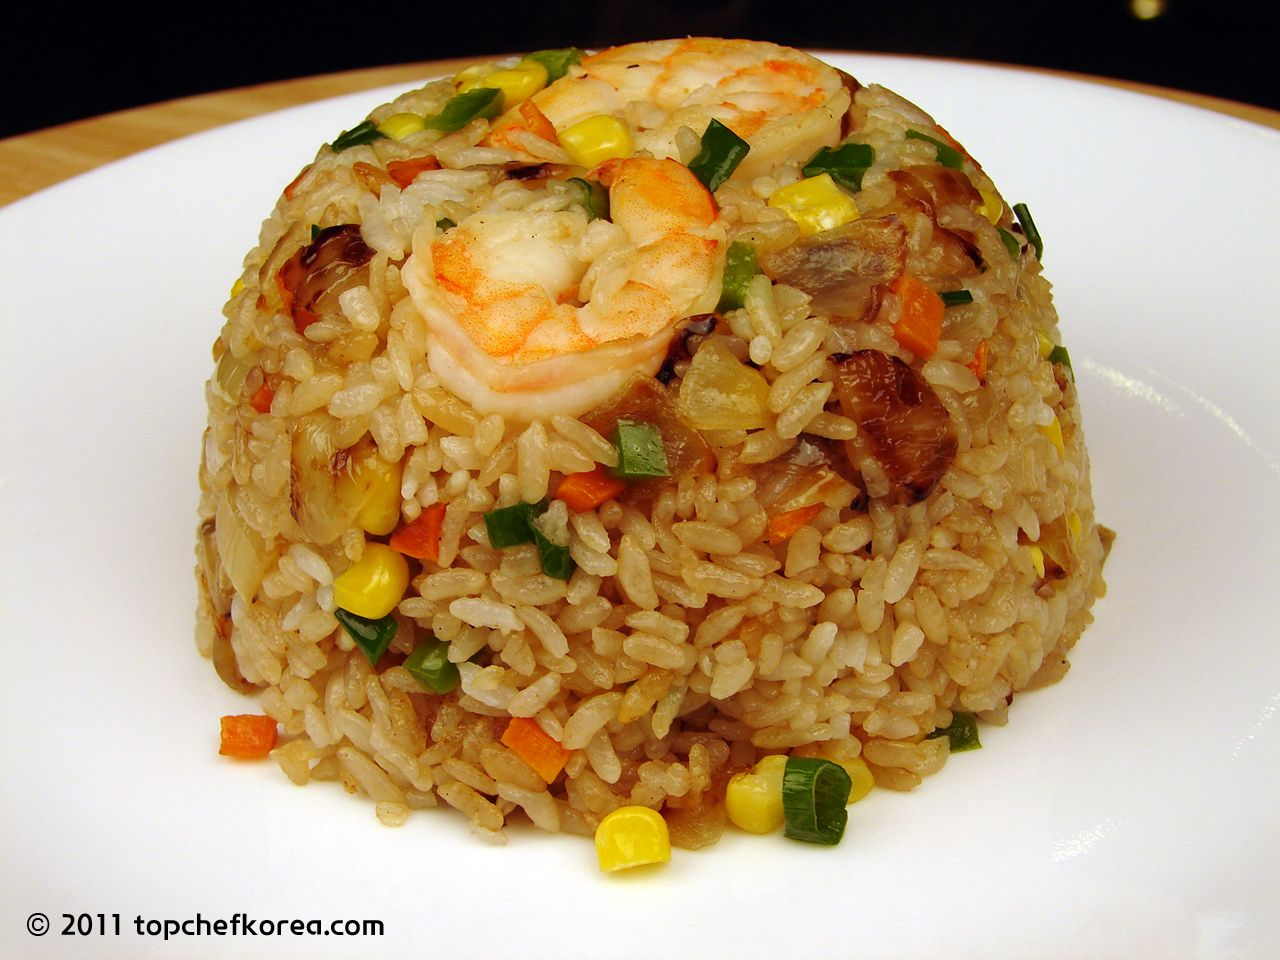 Shrimp fried rice top chef korea authentic shrimp fried rice top chef korea authentic korean food recipes in english forumfinder Image collections